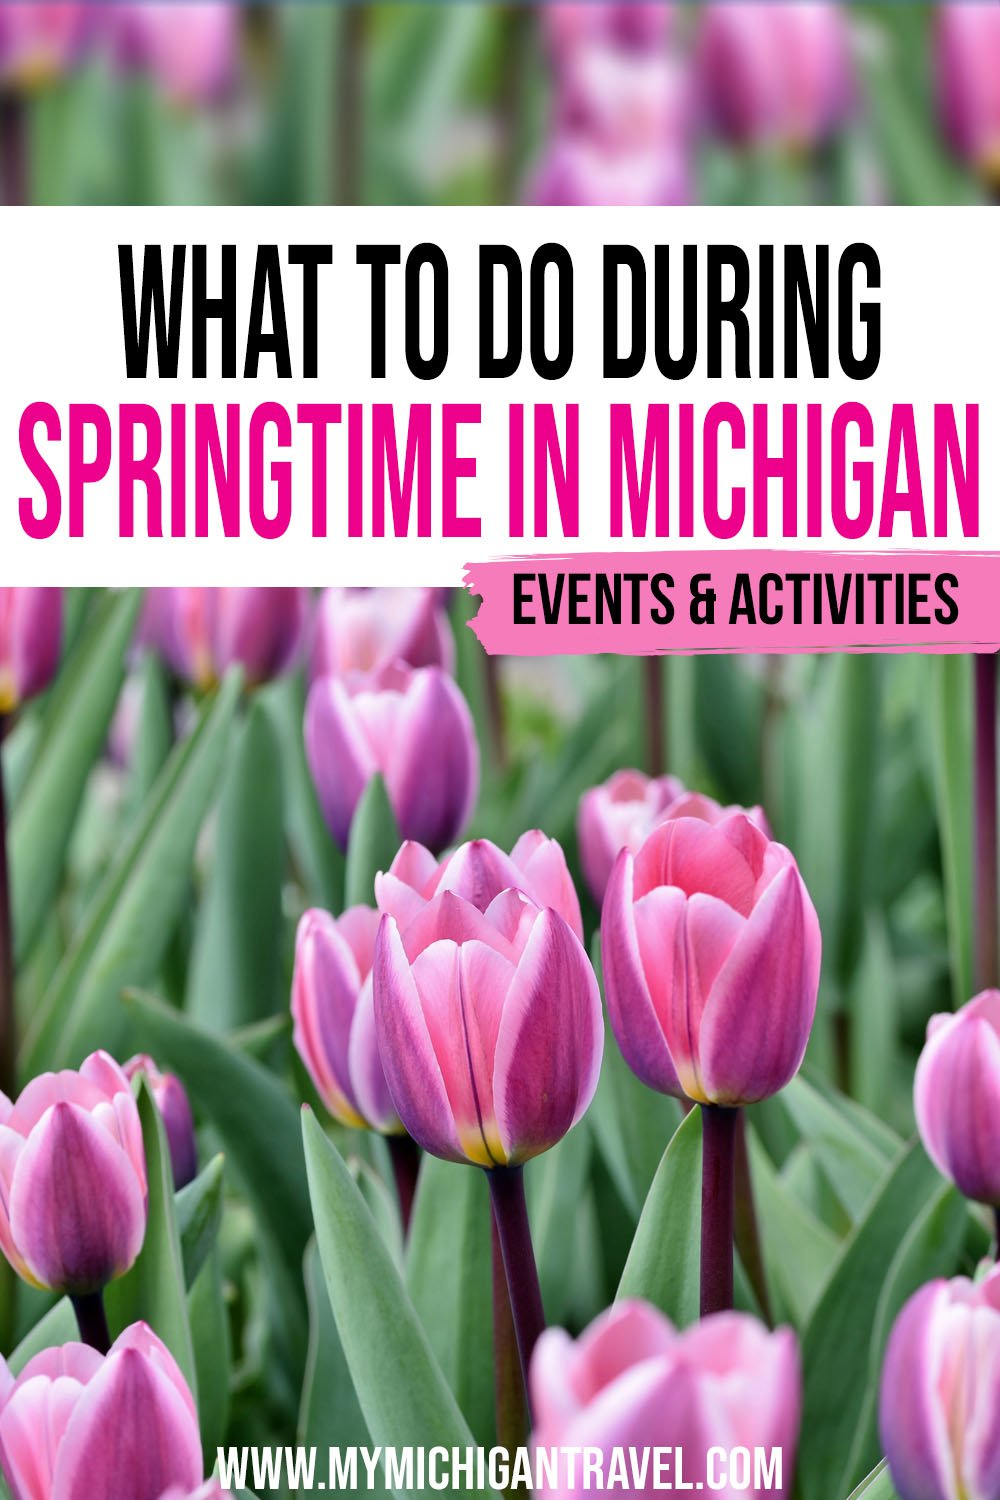 """Pink and purple tulips with text overlay reading """"What to do during springtime in Michigan - events & activities"""""""